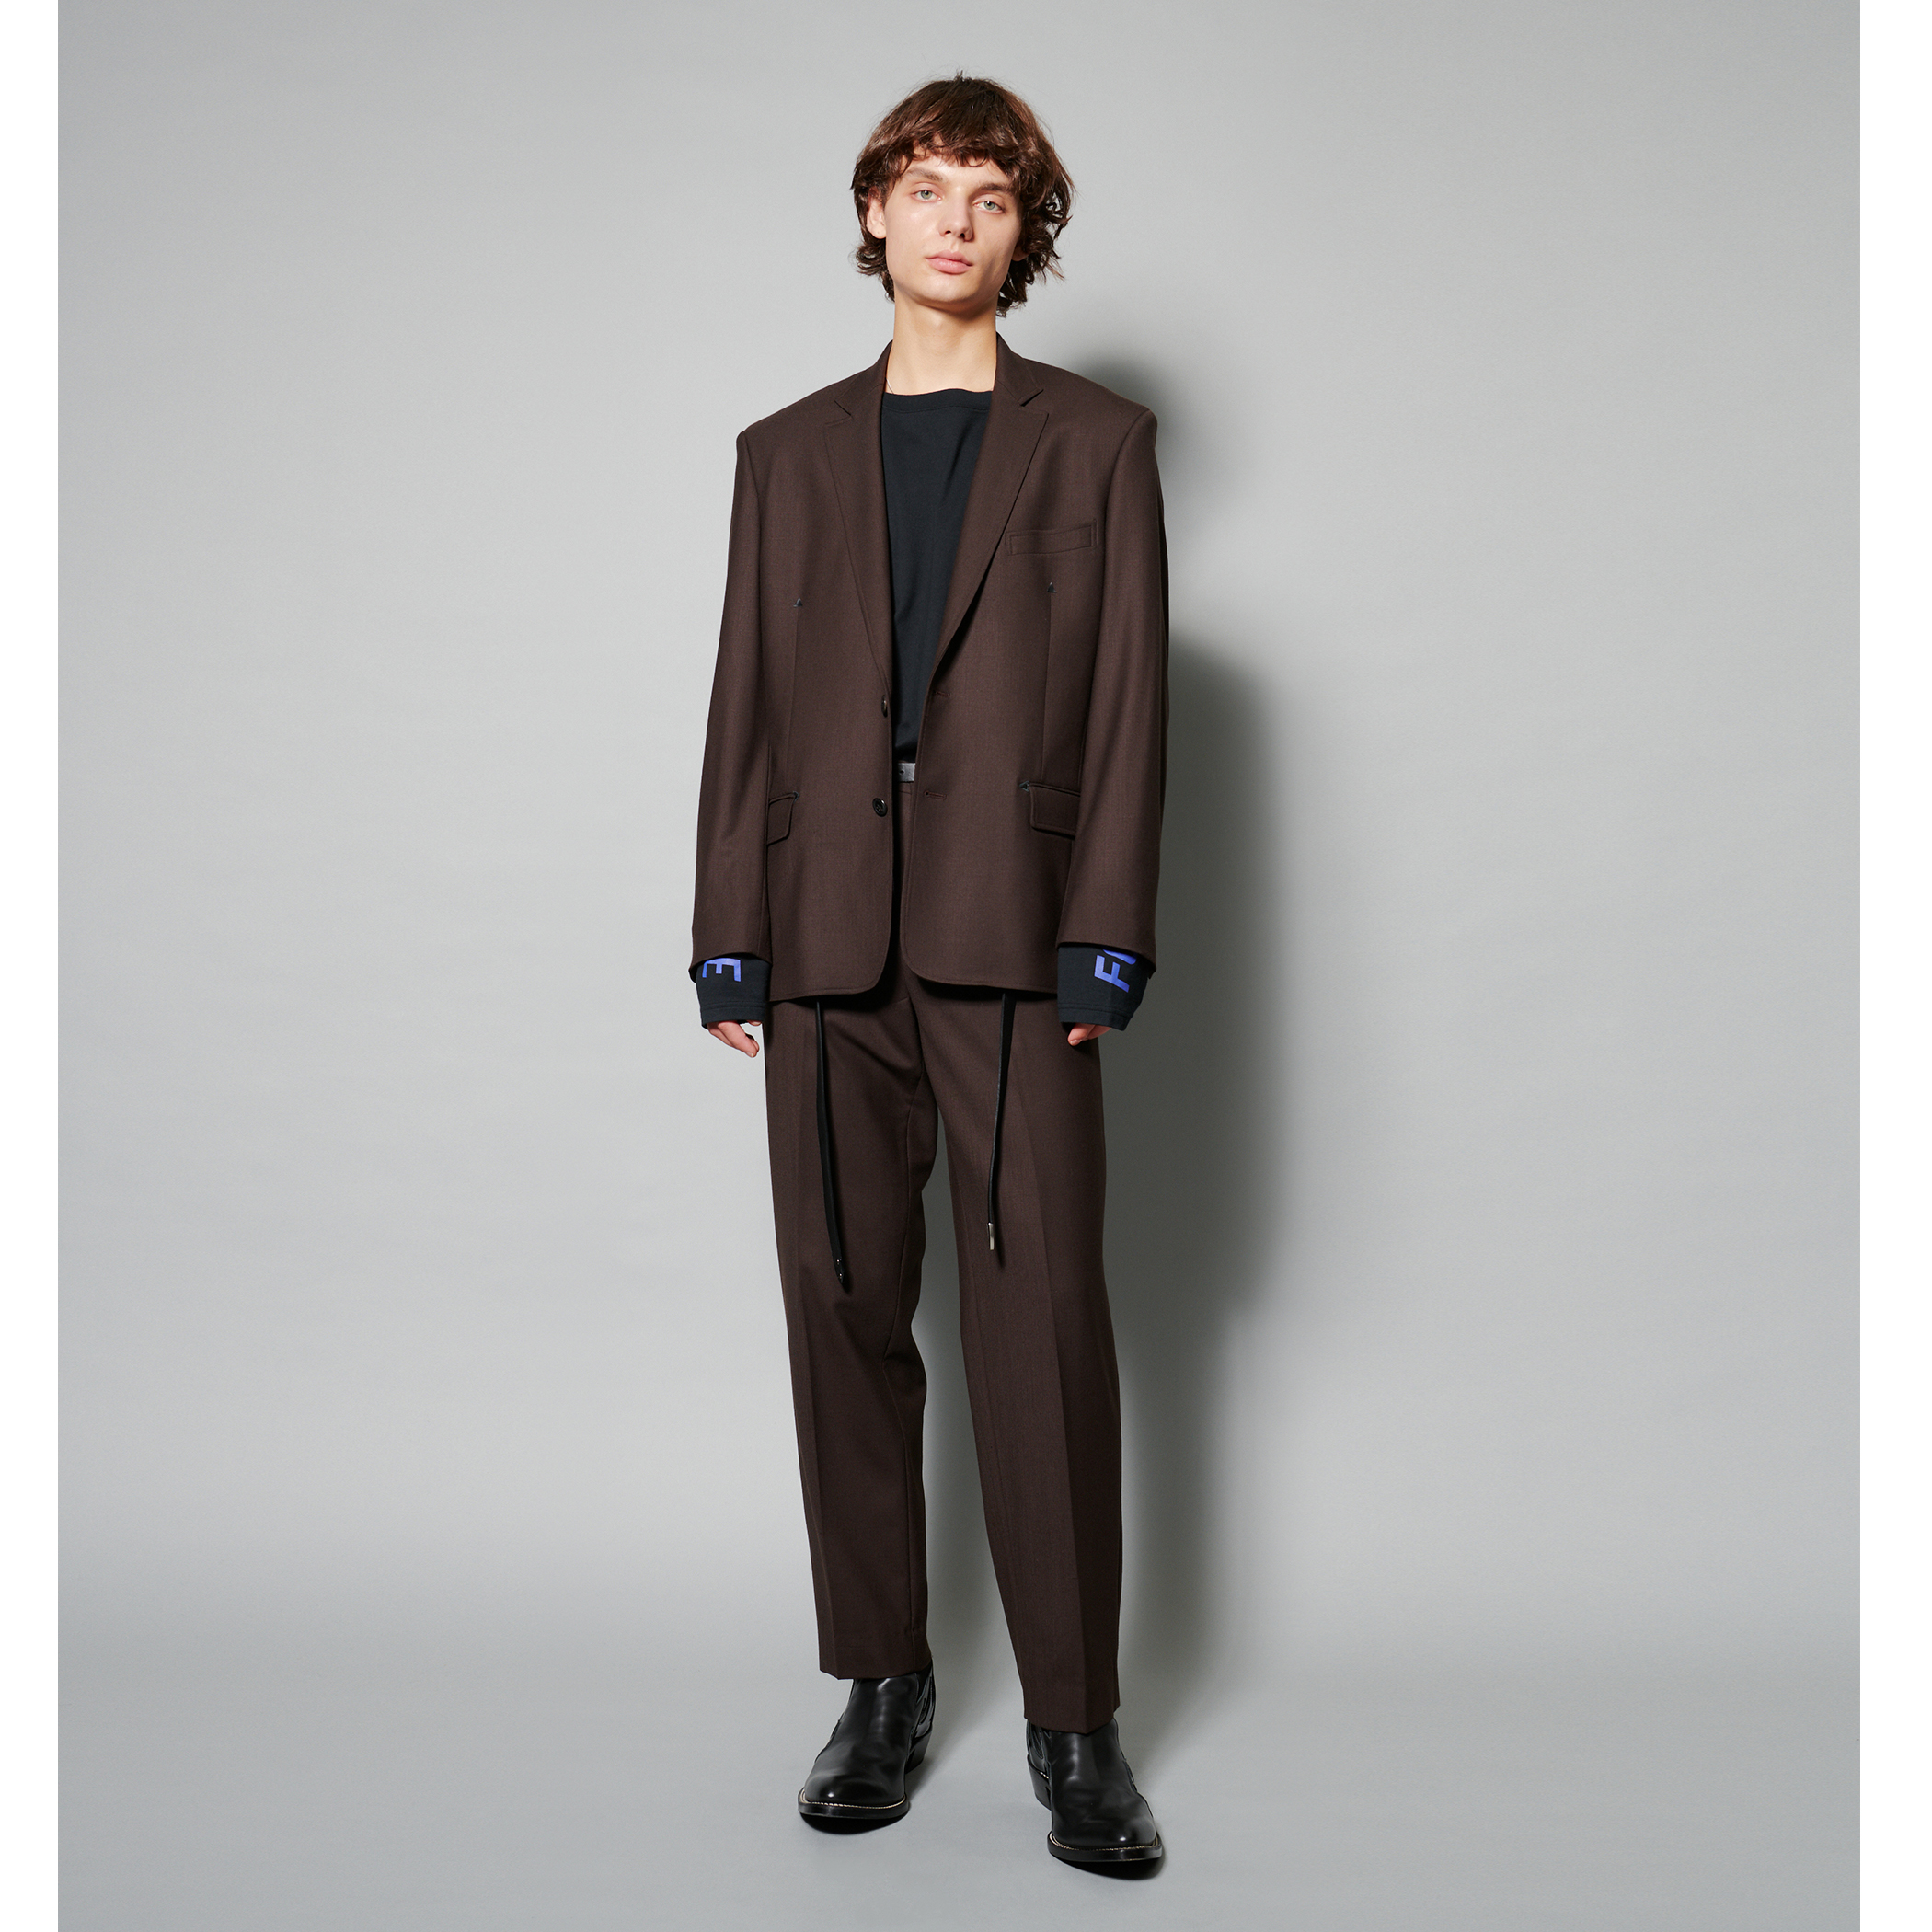 ADAM SUIT SOLID TROUSERS 詳細画像 Brown 6